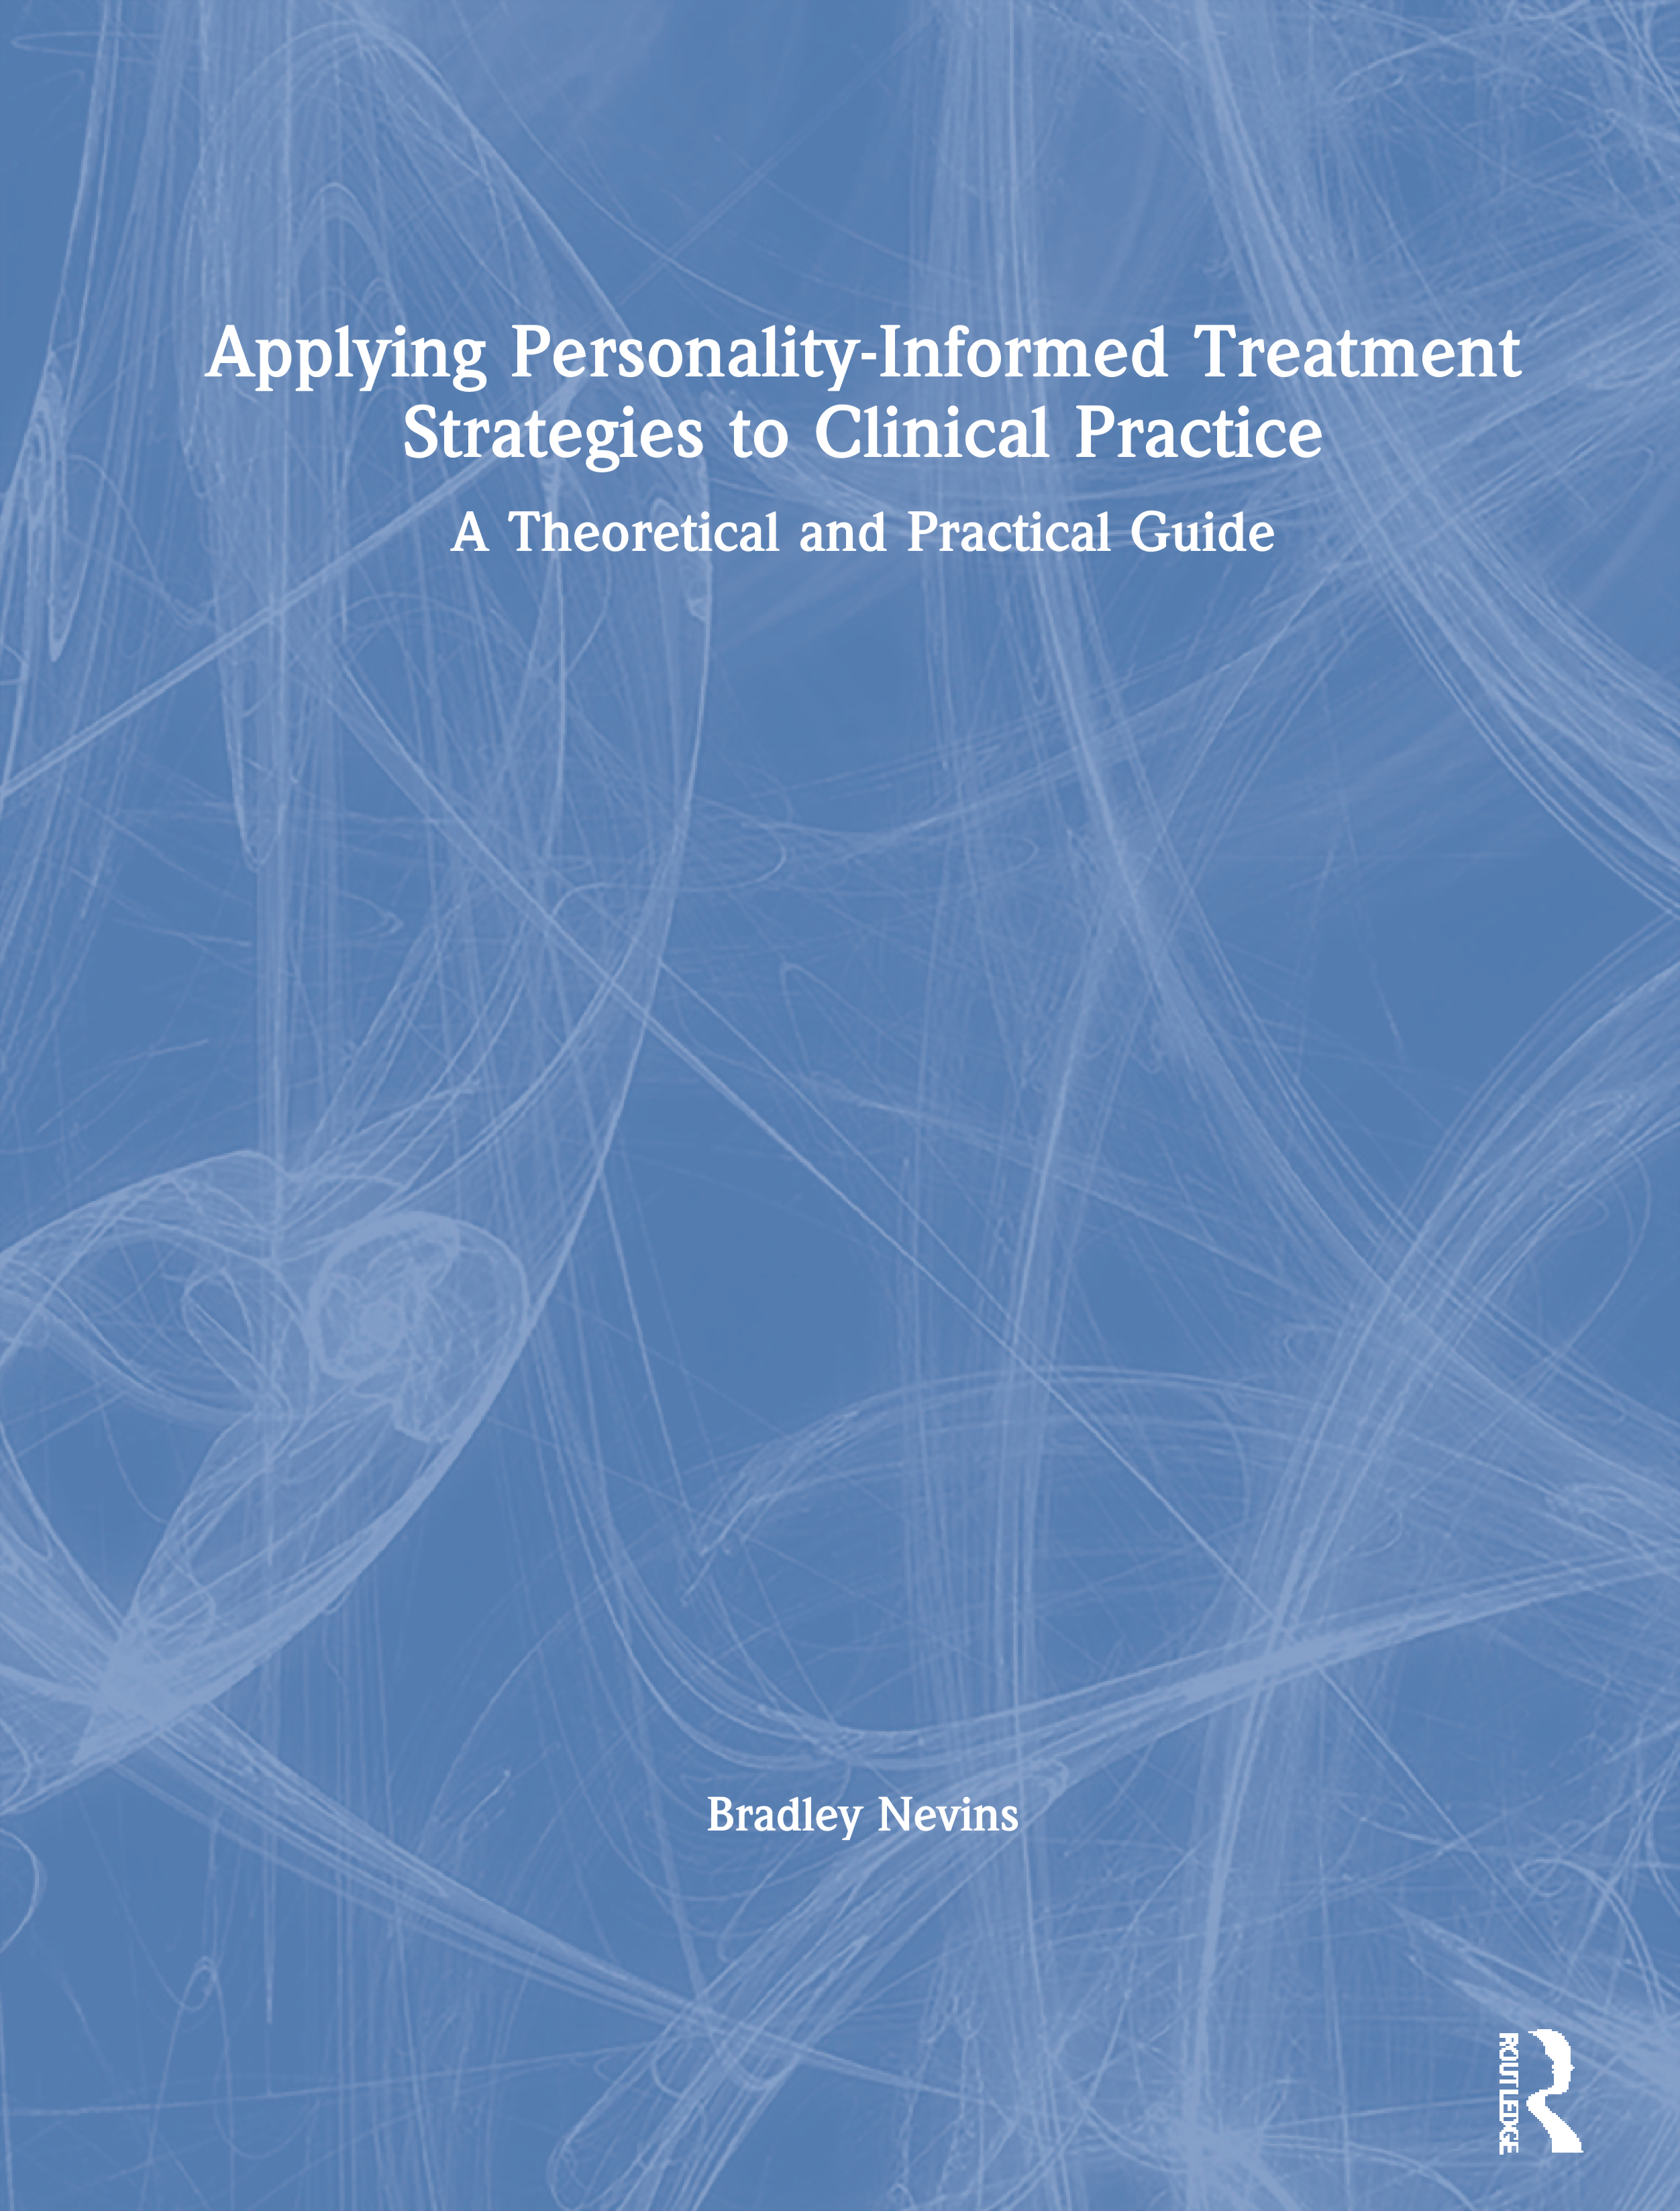 Applying Personality-Informed Treatment Strategies to Clinical Practice: A Theoretical and Practical Guide book cover